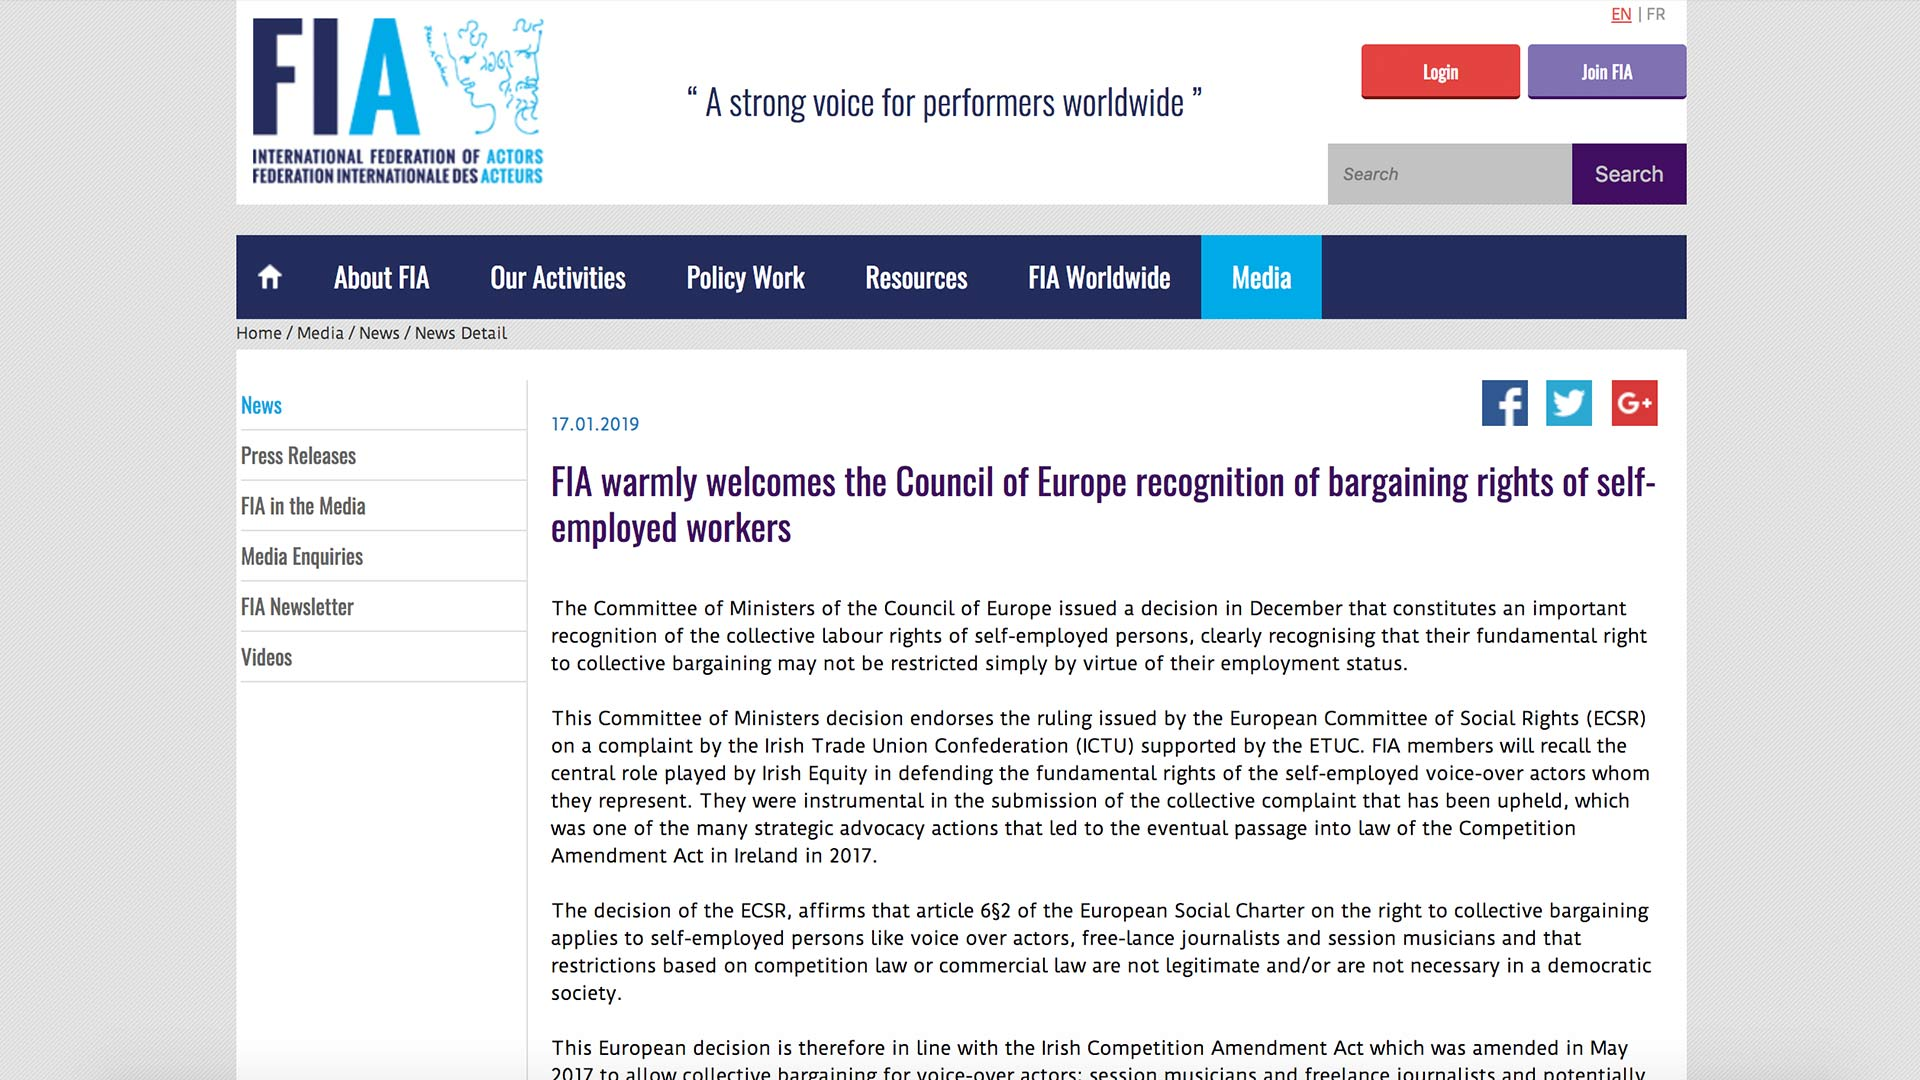 Fairness Rocks News FIA warmly welcomes the Council of Europe recognition of bargaining rights of self-employed workers